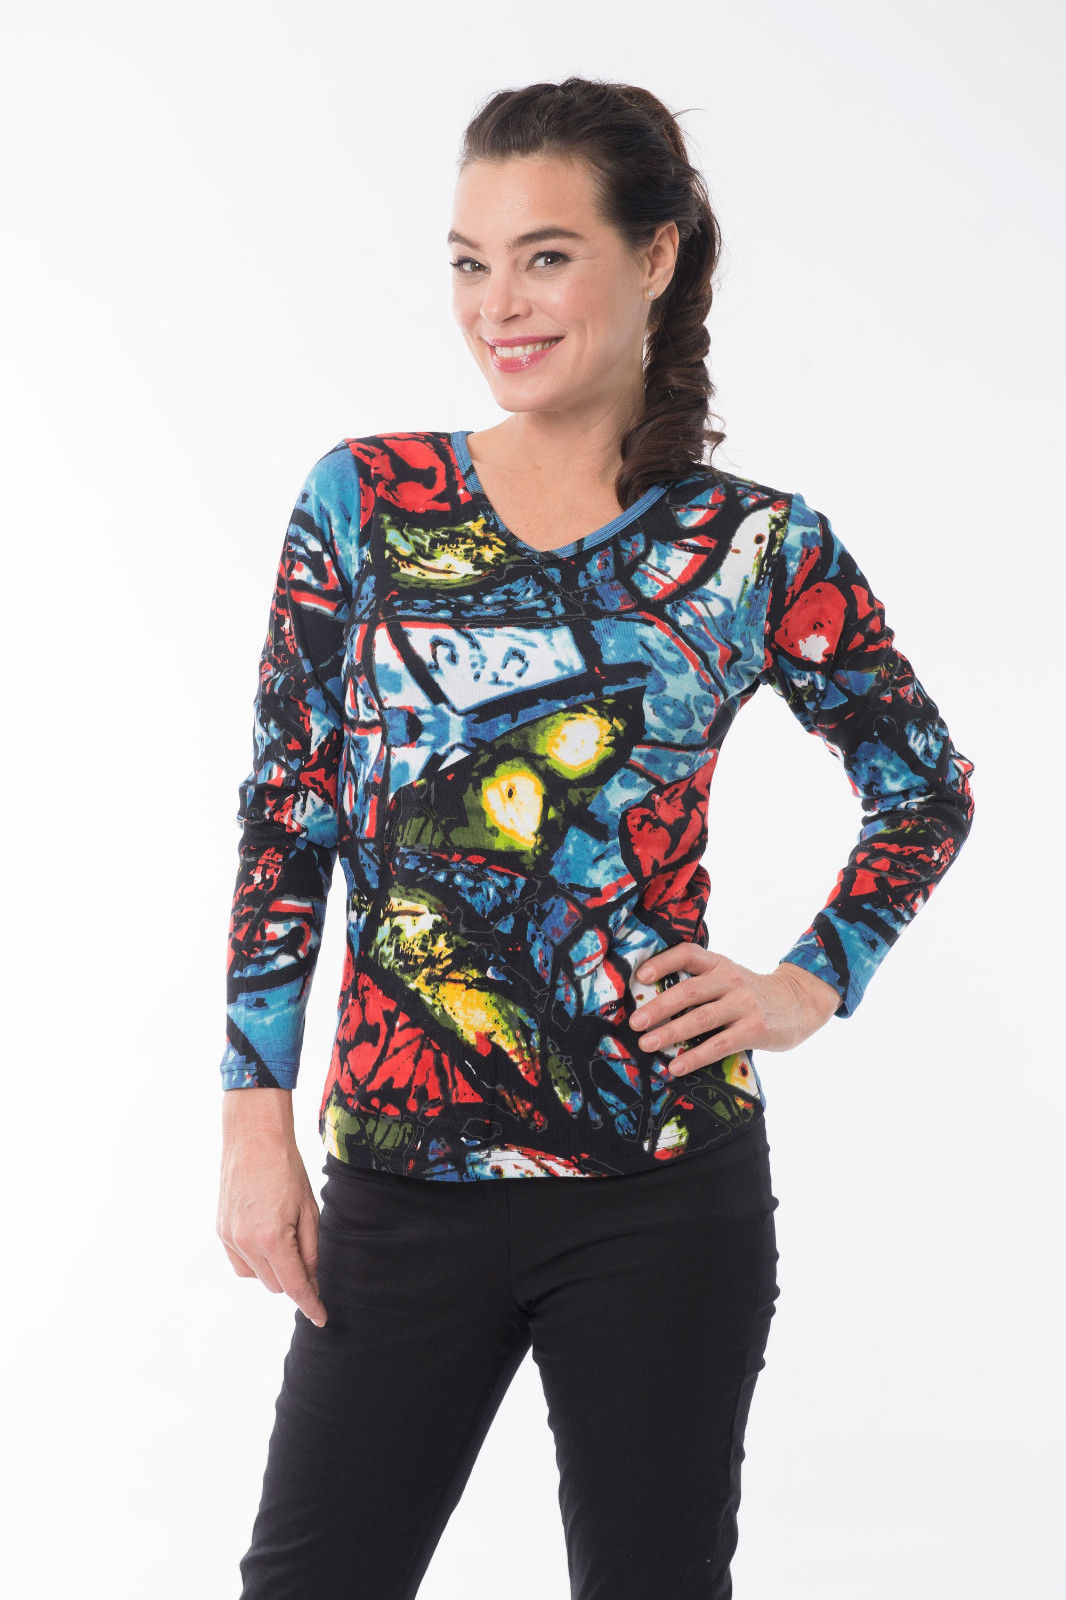 ORIENTIQUE-PRINTED-LONG-SLEEVED-V-NECK-LADIES-WOMENS-COTTON-T-SHIRT-BLUE-RED-382026939567